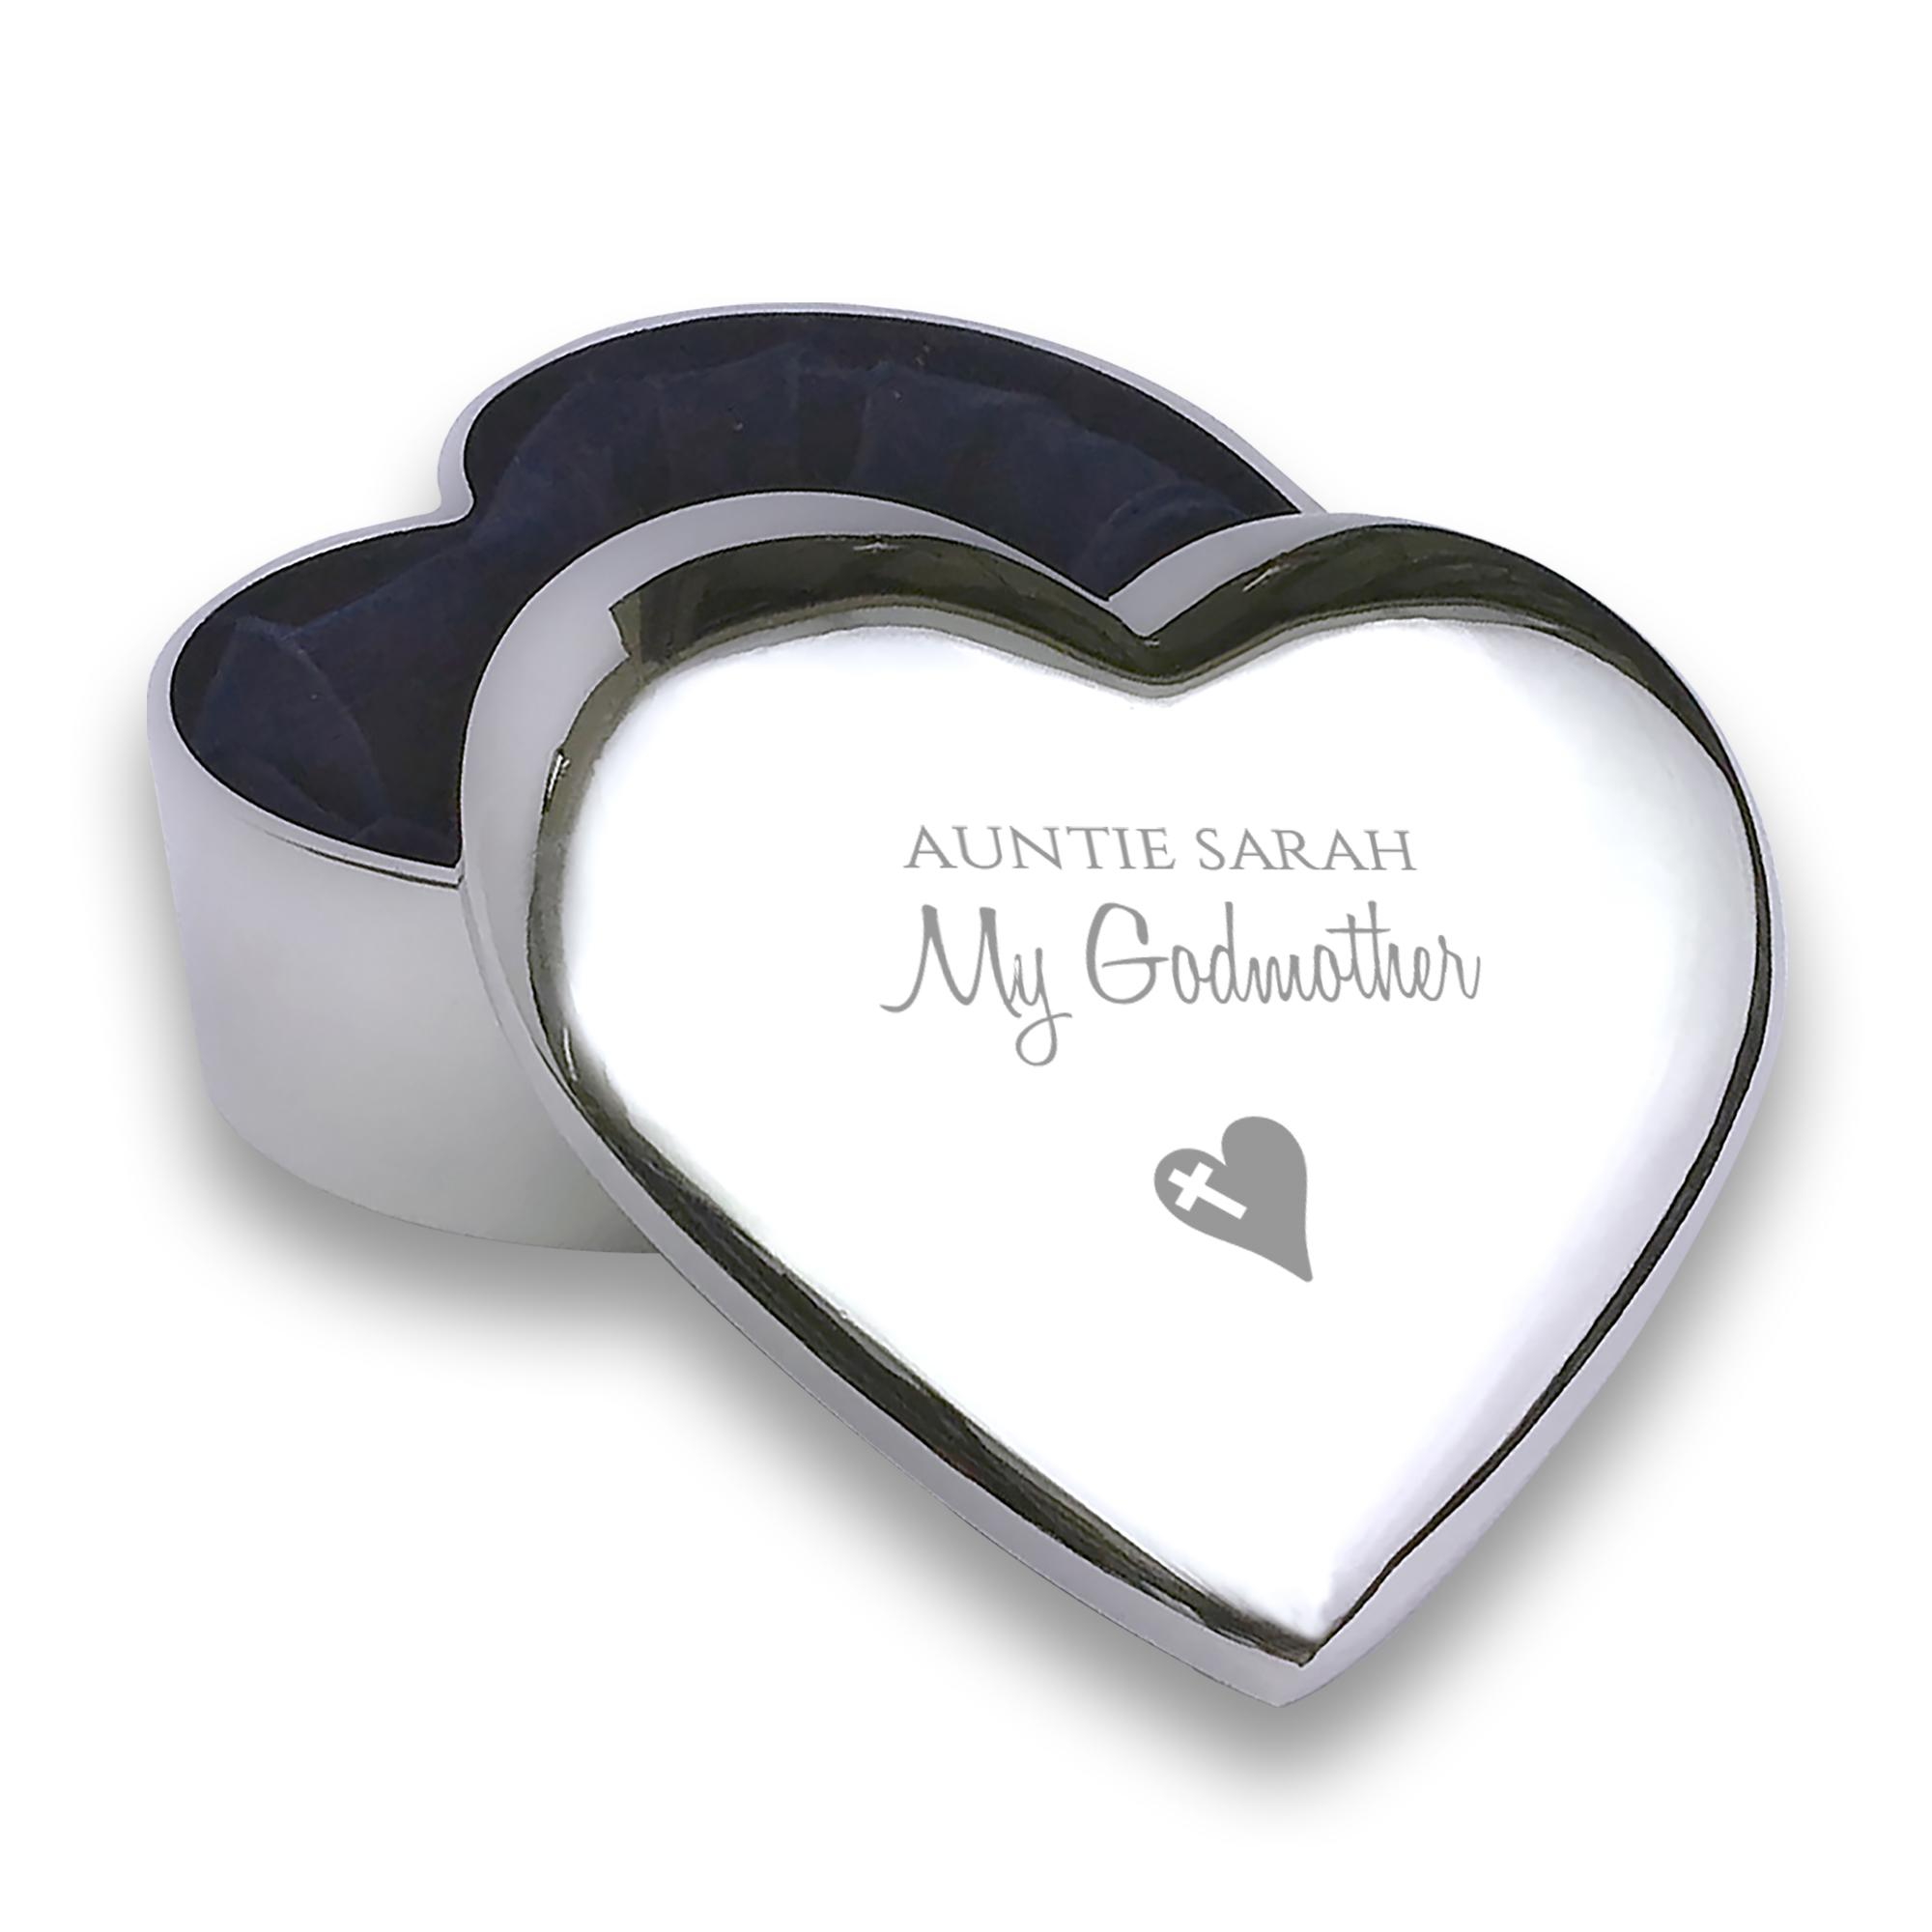 Personalised Engraved Godmother Heart Trinket Box Christening Baptism Gift Idea